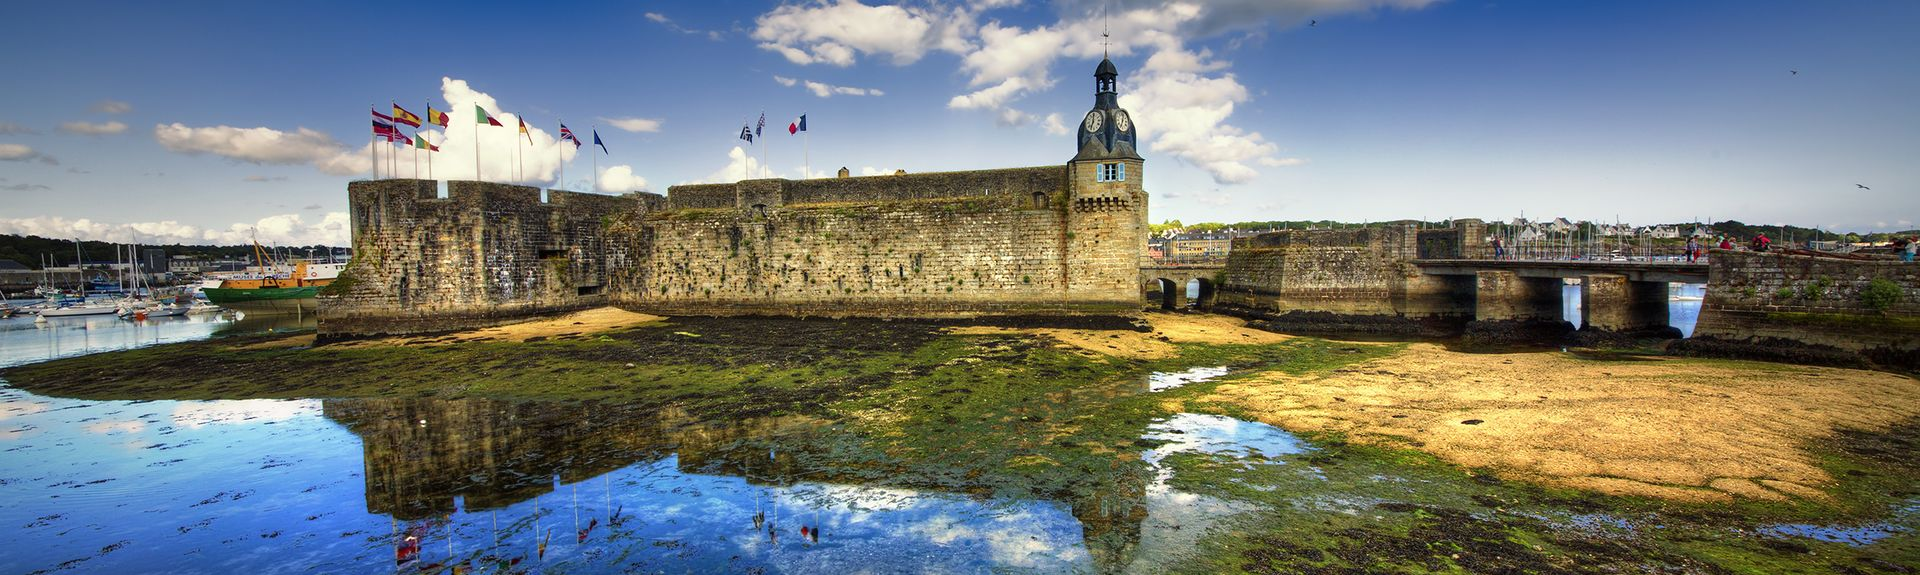 Concarneau, Finistere, France